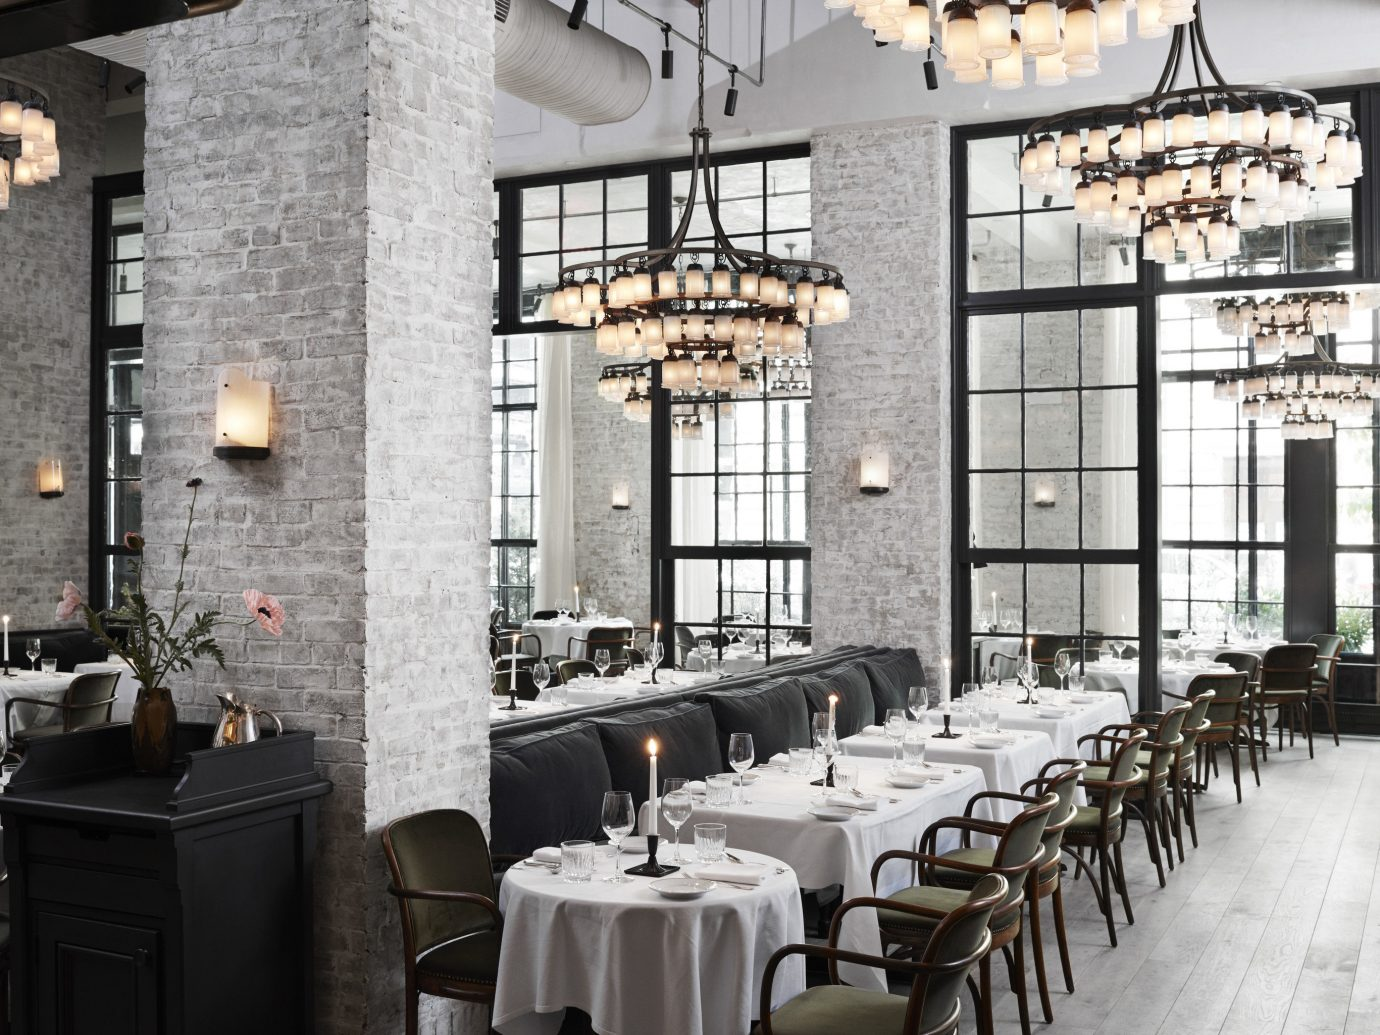 Food + Drink Romance indoor room restaurant meal interior design aisle furniture several dining room